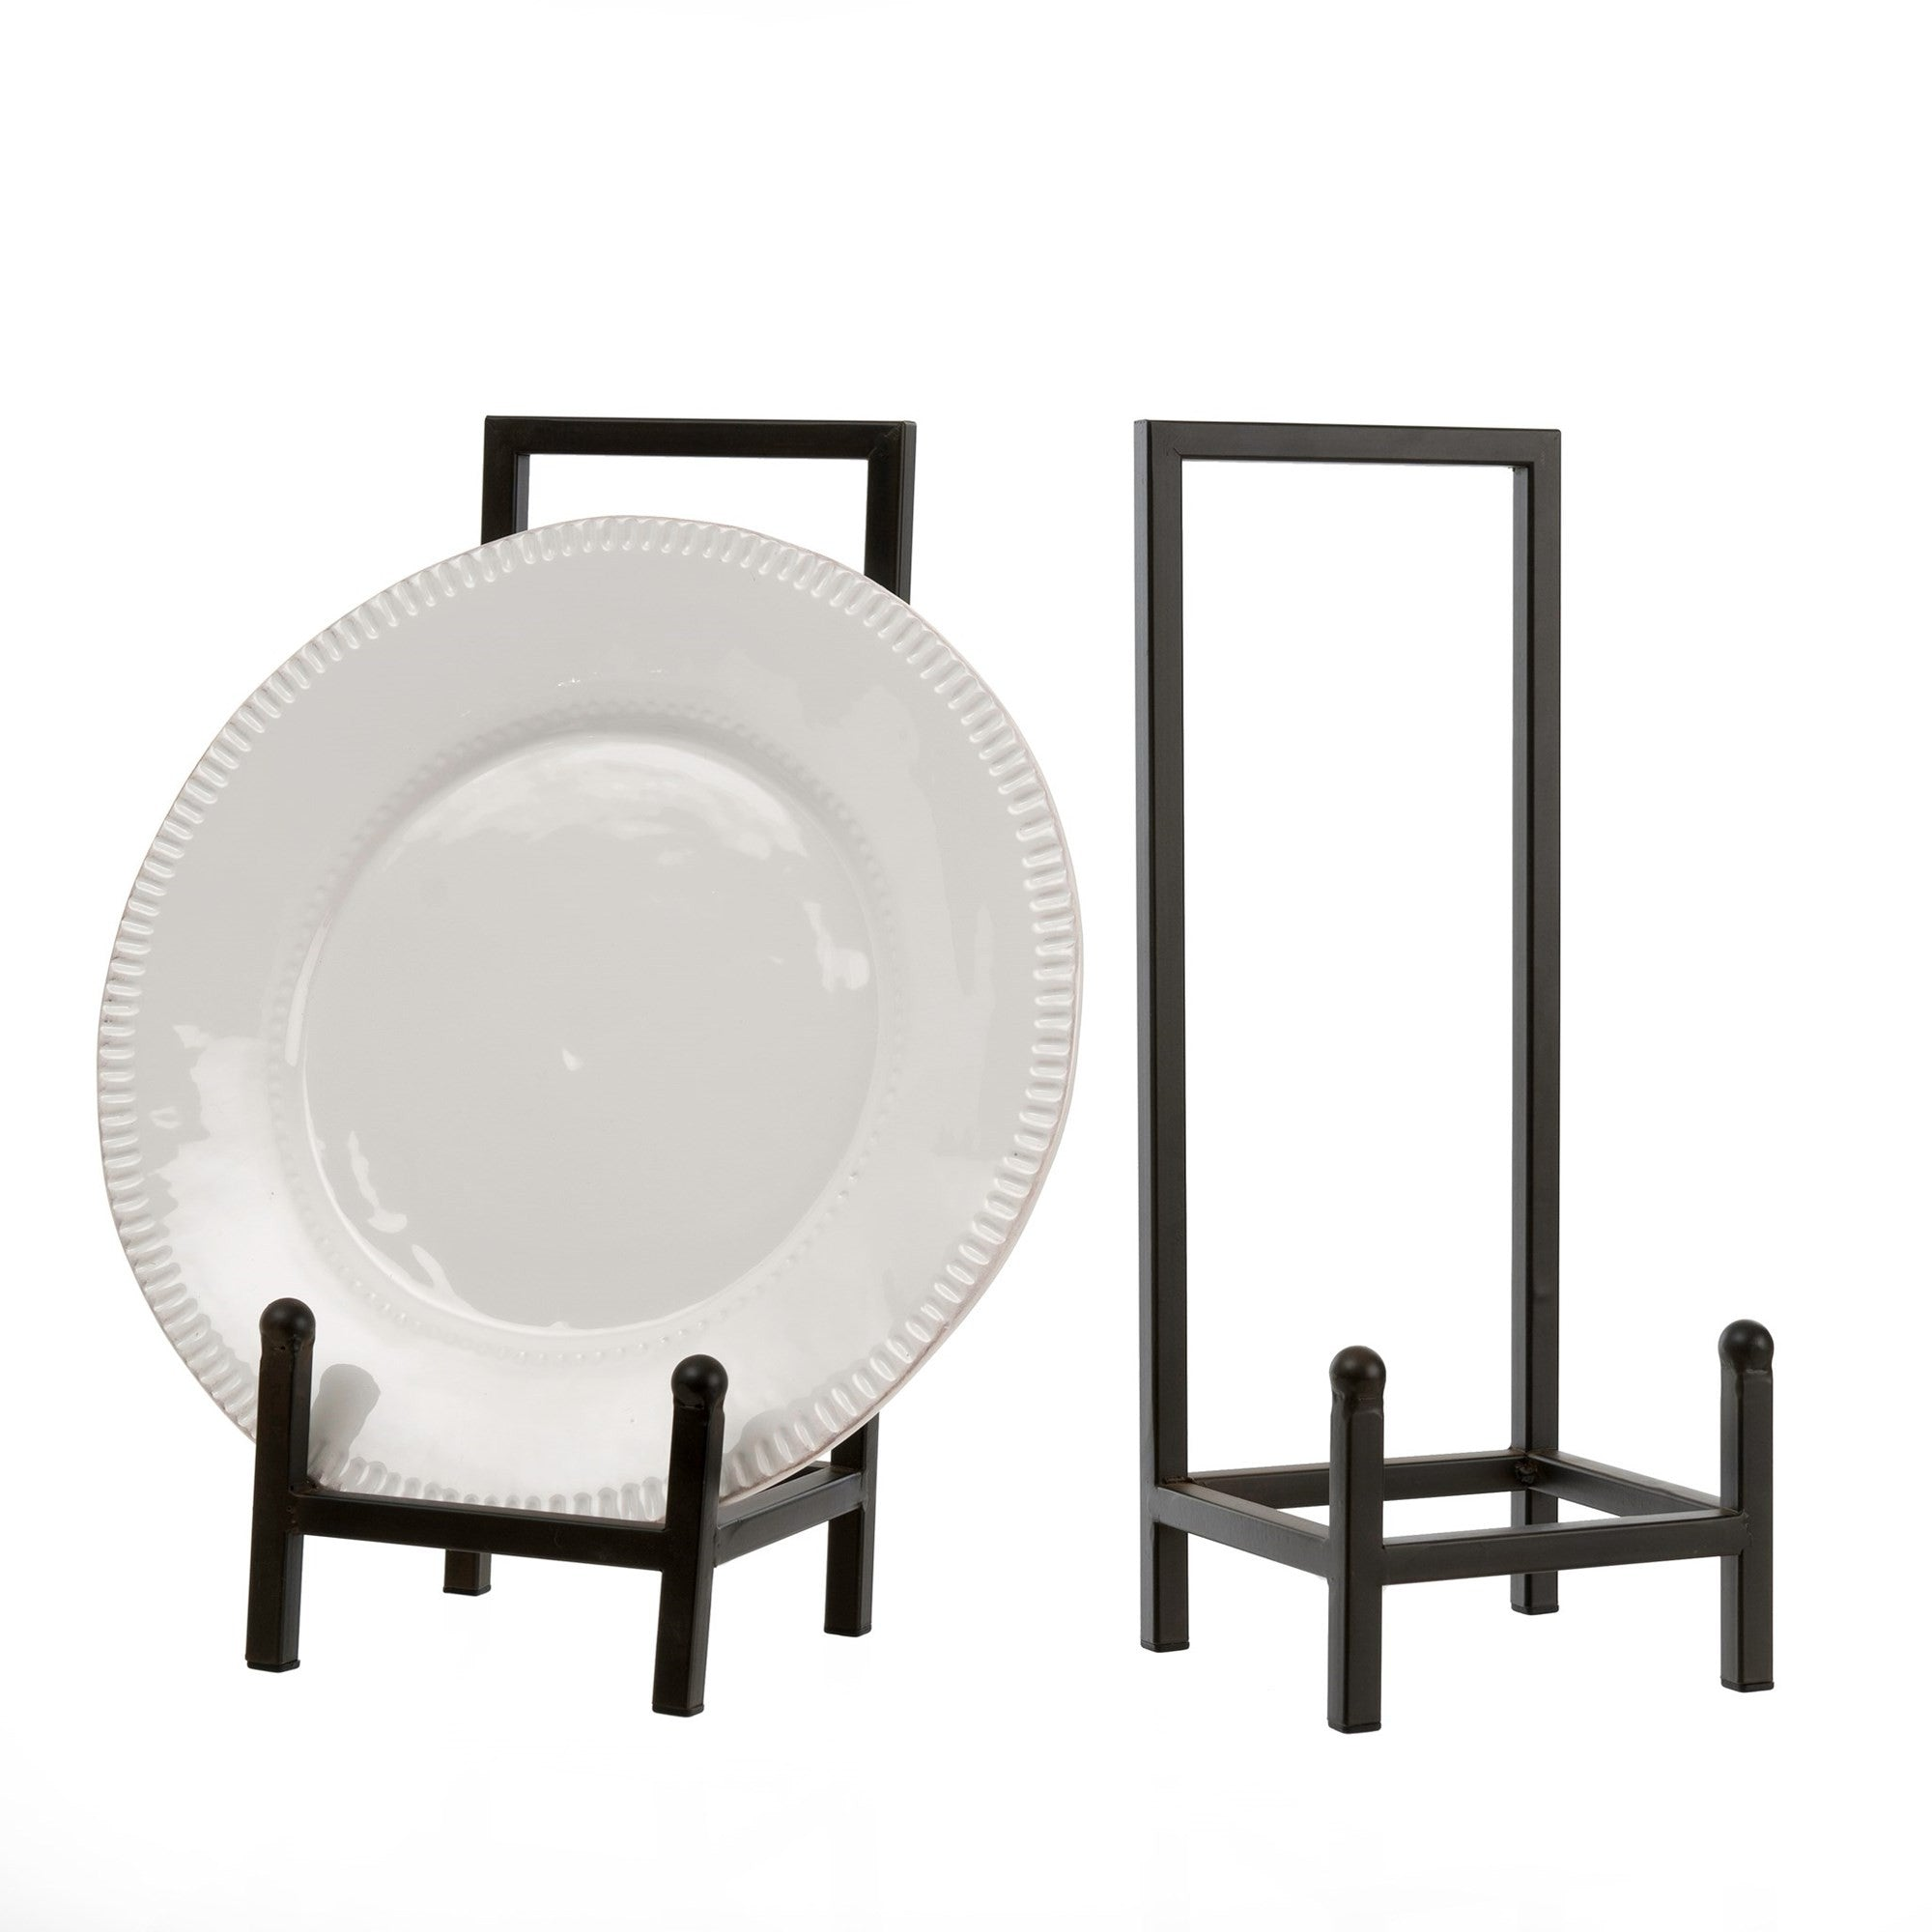 Mount antique plates funky frames or prized pieces with sleek and simple metal stands. L 6.25  W 6  H 16   sc 1 st  Pretty Grit & Plate Stand u2013 Pretty Grit